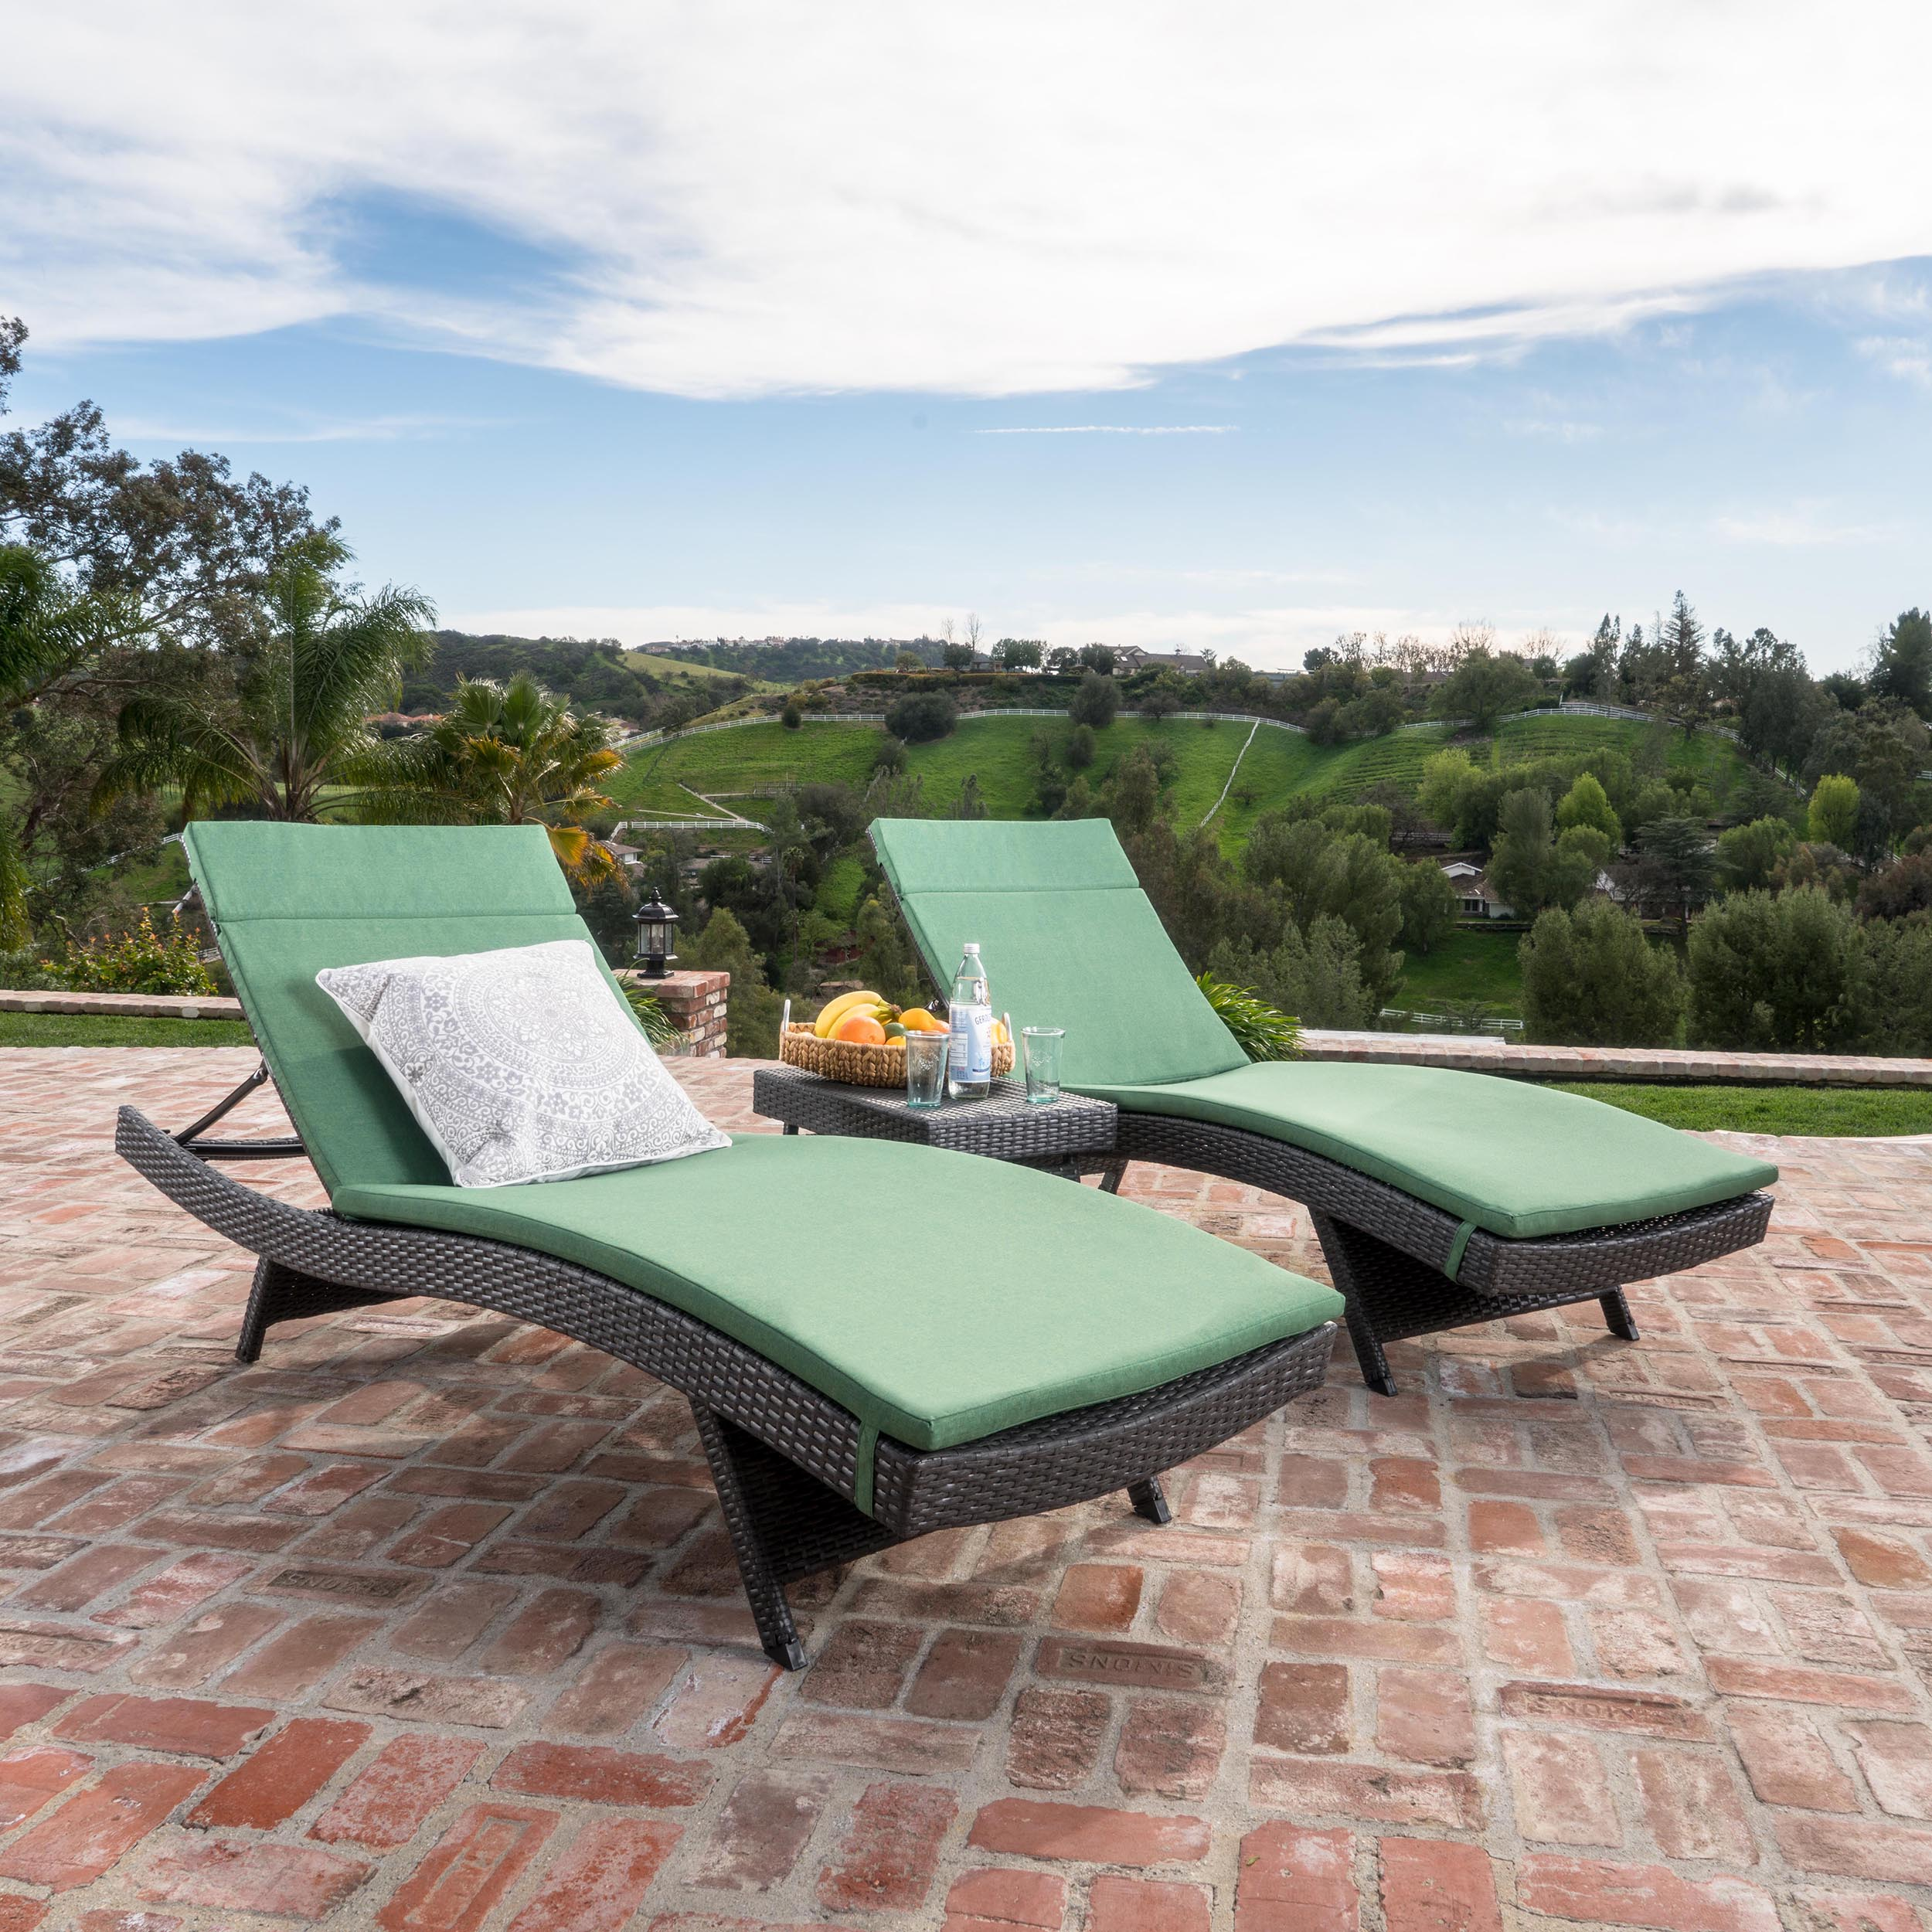 Savana 3-Piece Outdoor Wicker Lounge with Water Resistant Cushions and Coffee Table, Grey/ Jungle Green